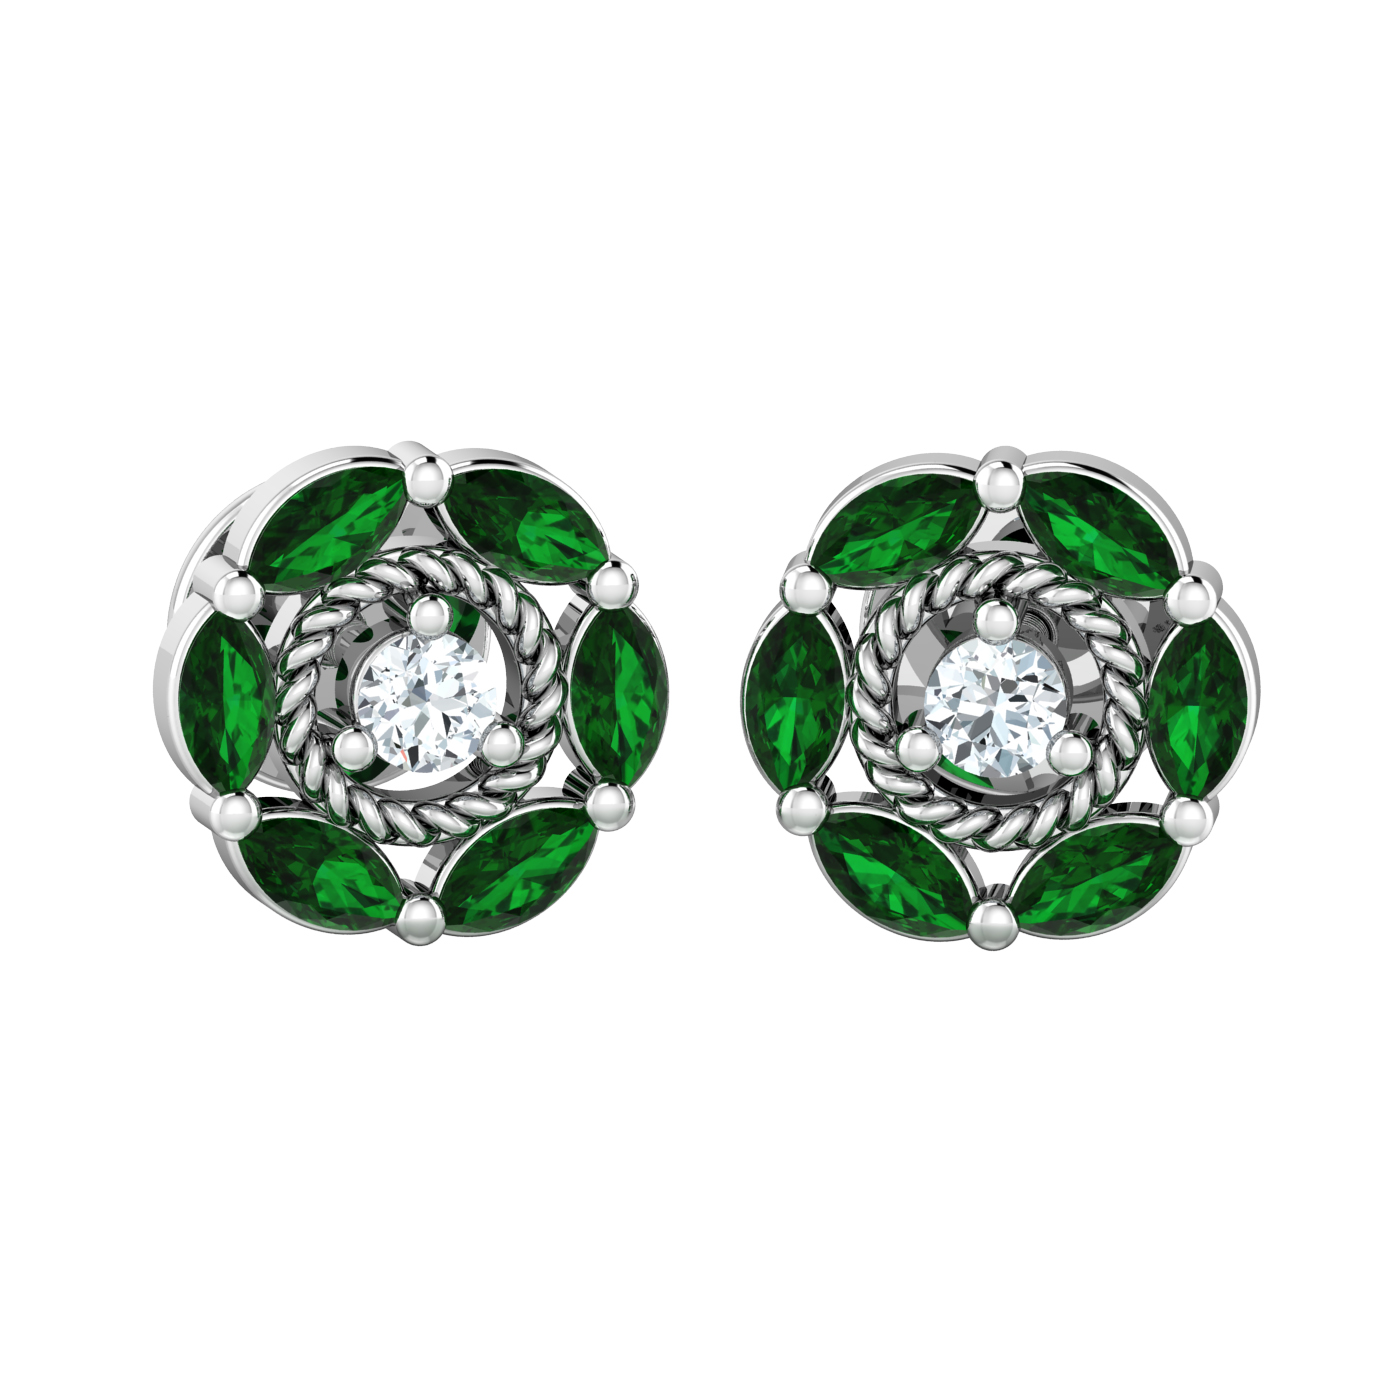 colombian handmade jewelry omega large livemaster emerald colombia item natural earrings buy